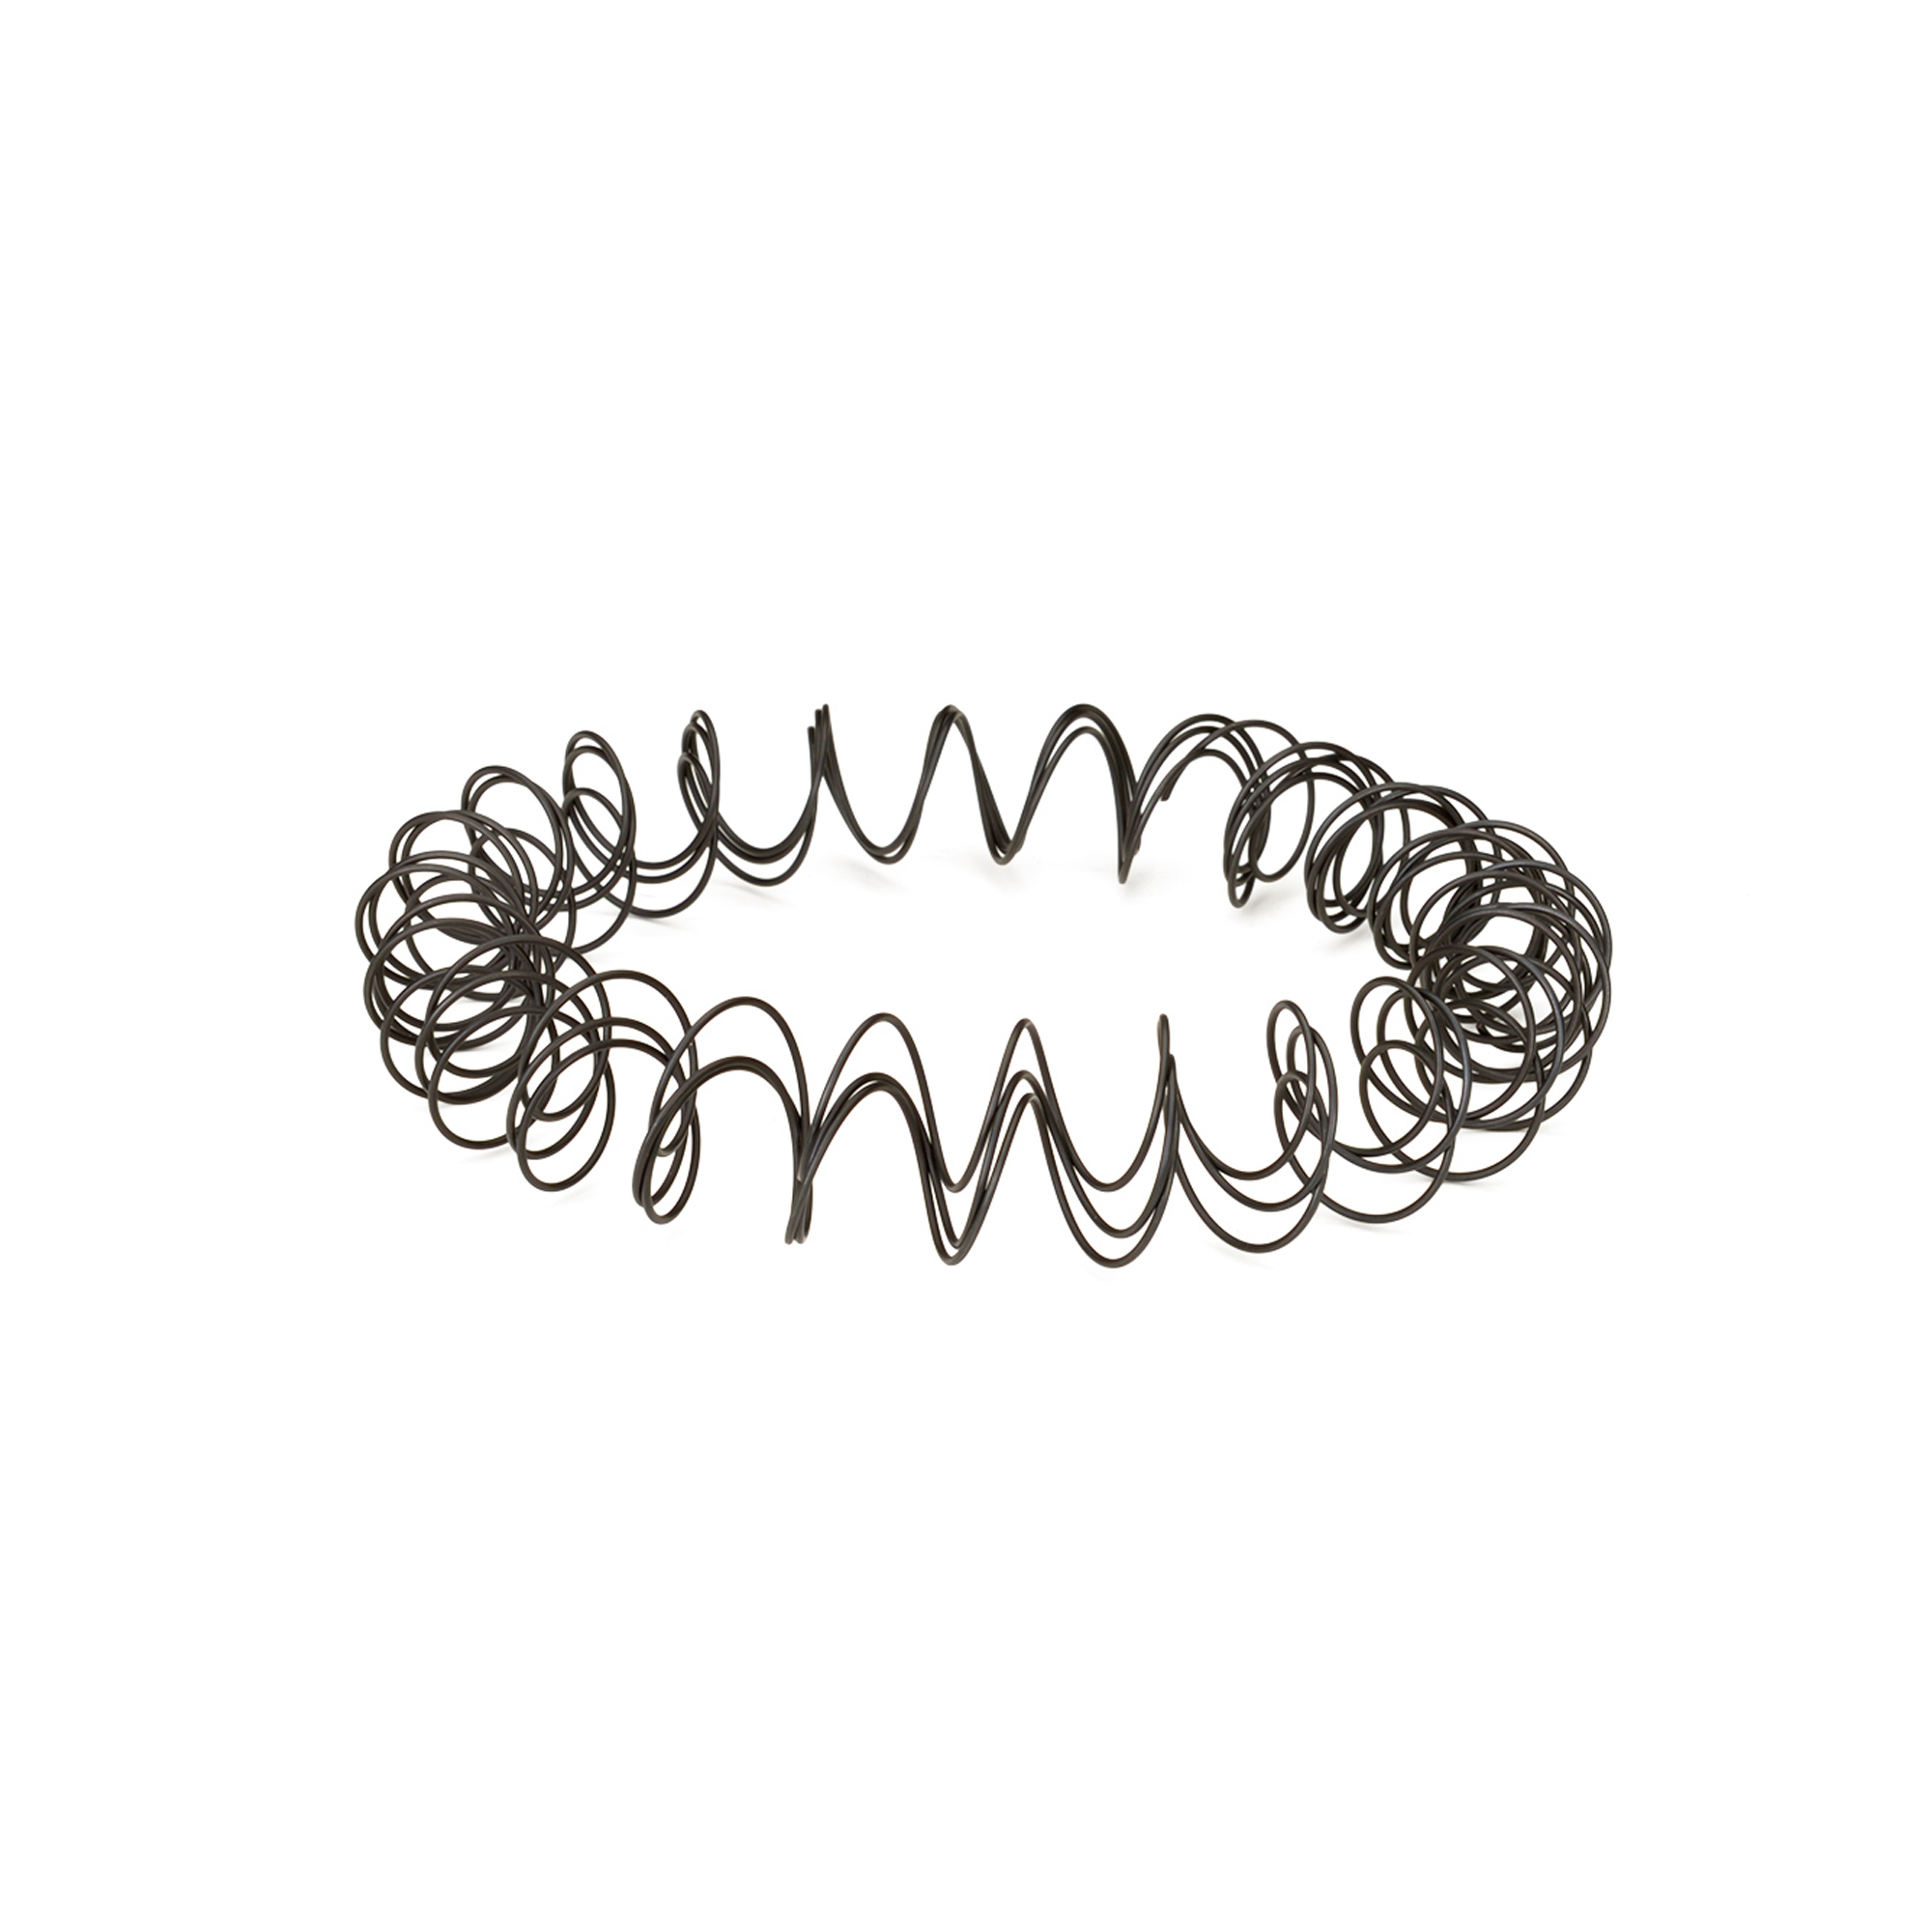 Heavy Duty replacement spring for shotgun magazine extensions. Ships coiled in package with instructions for determining length and cutting.